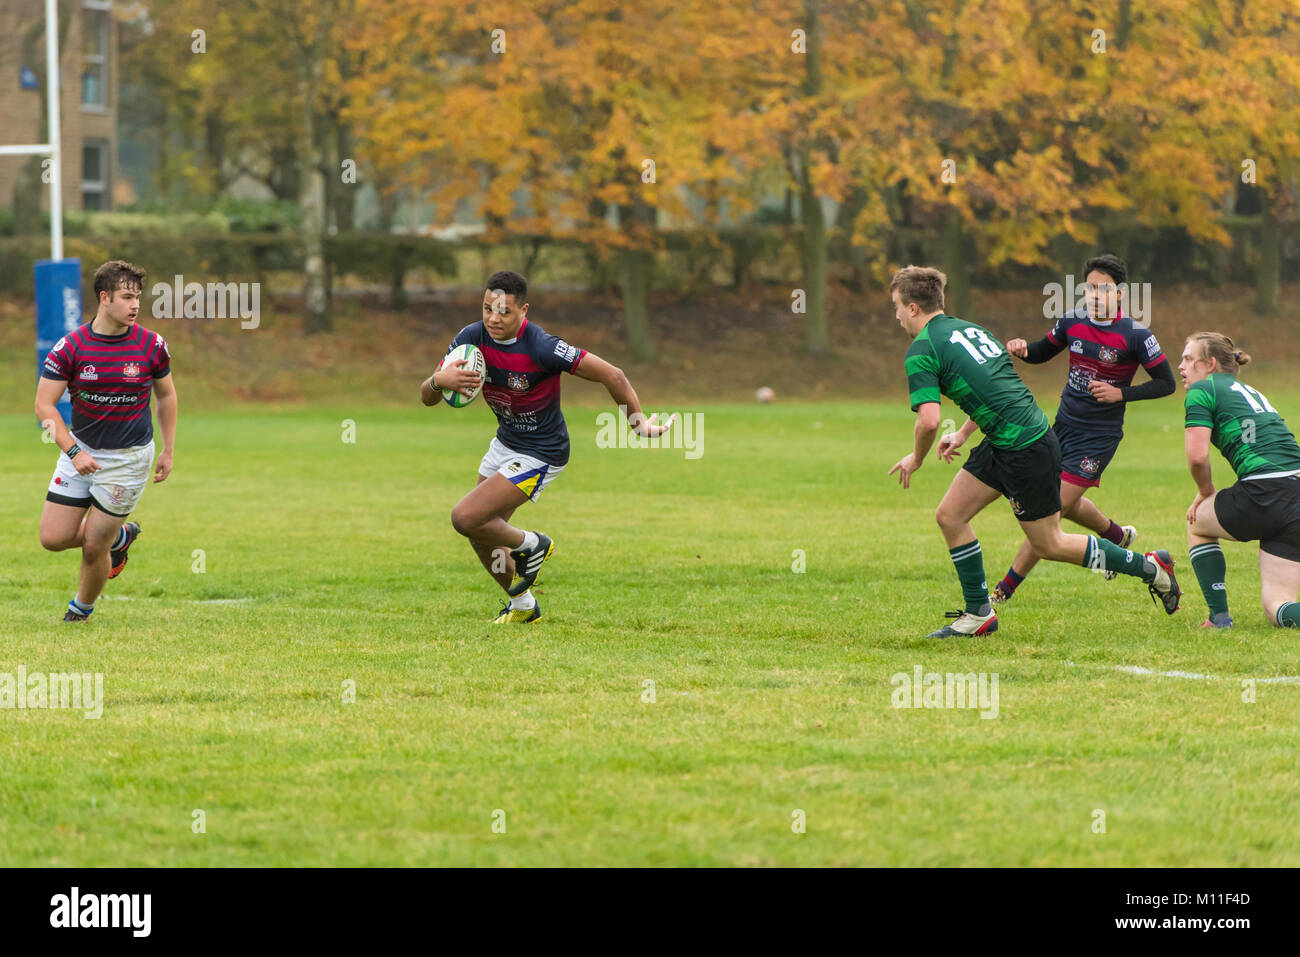 Kent University students at Canterbury competing in a rugby union match. against another university. - Stock Image